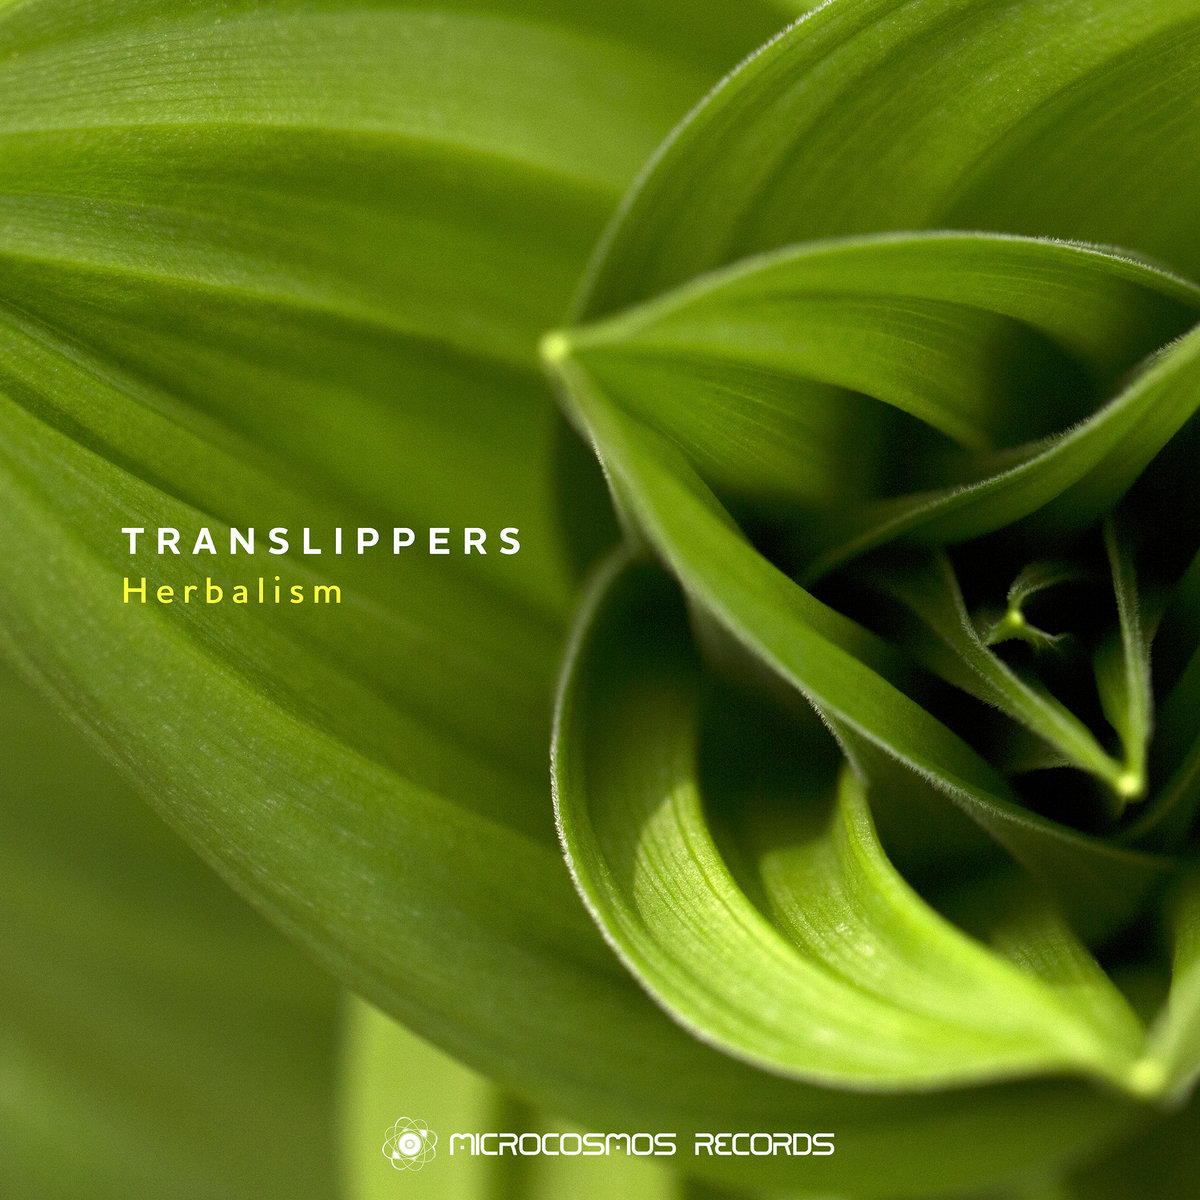 Translippers - Prince @ 'Herbalism' album (ambient, chill-out)